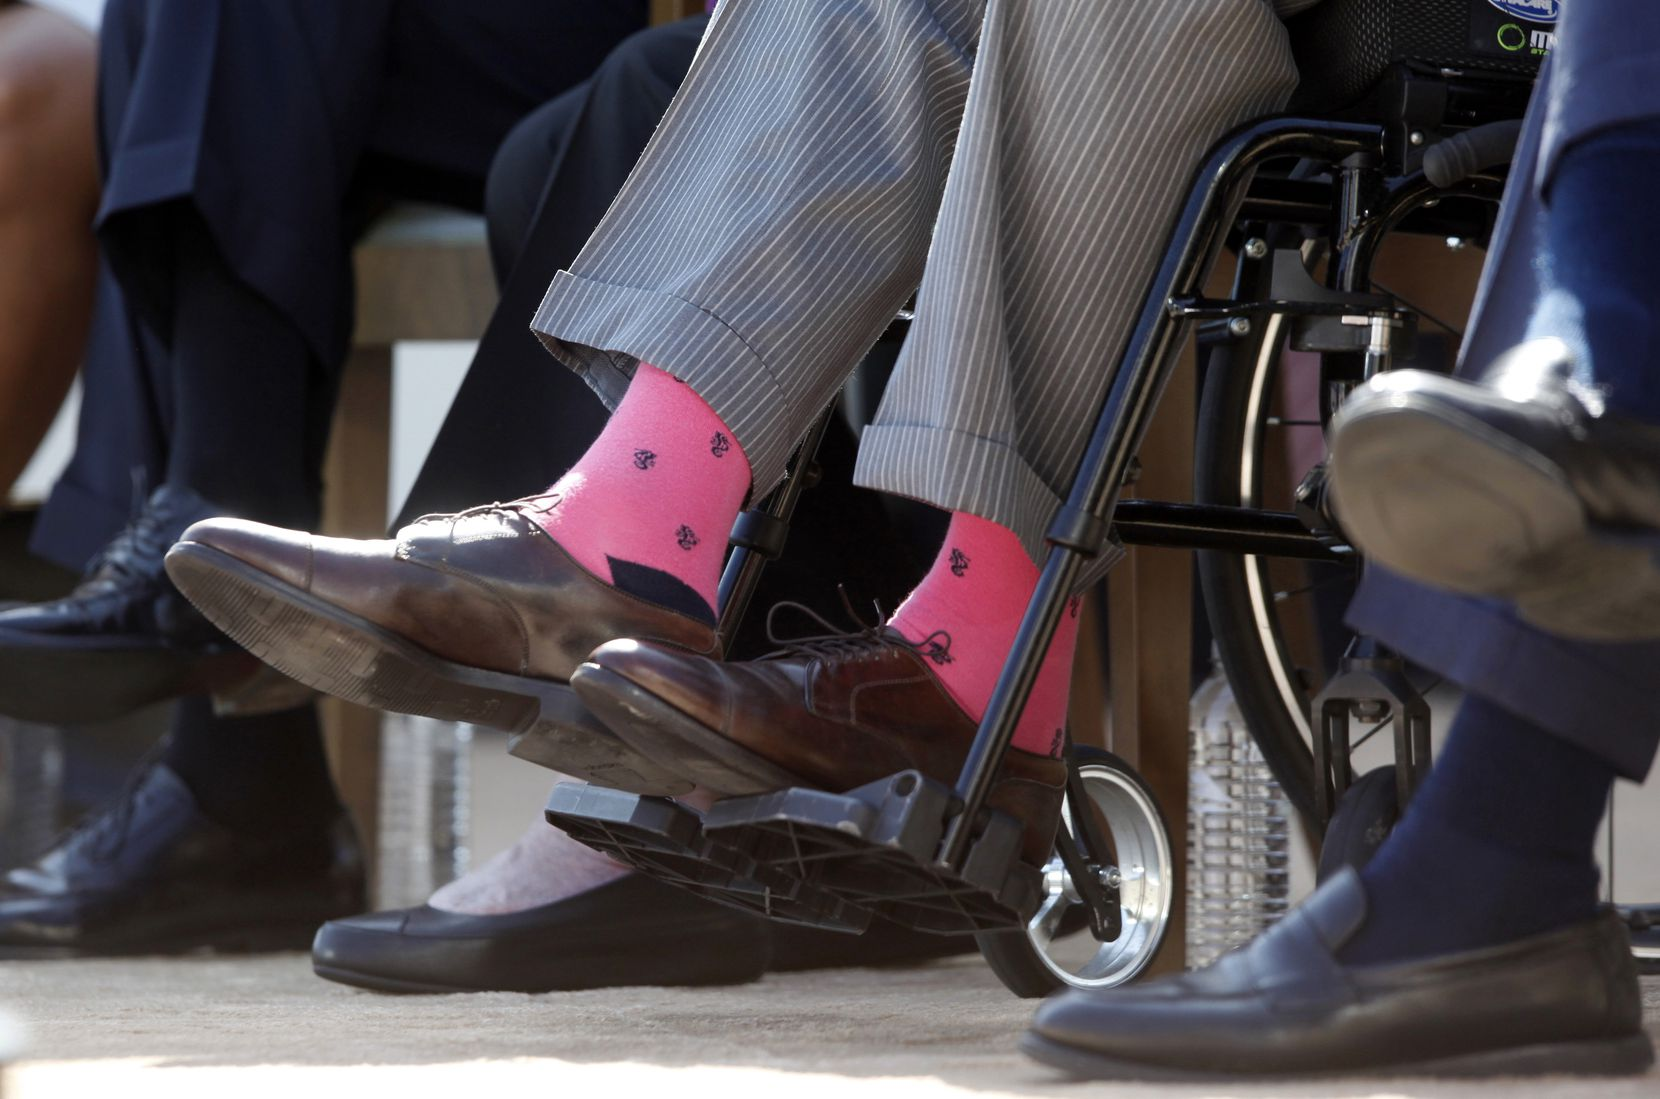 """2013: Former President George H.W. Bush wears pink socks as he is seated in a wheelchair at the dedication of the George W. Bush Presidential Library on the campus of SMU. In recent years the former president became known for wearing """"exuberant socks"""" in public."""